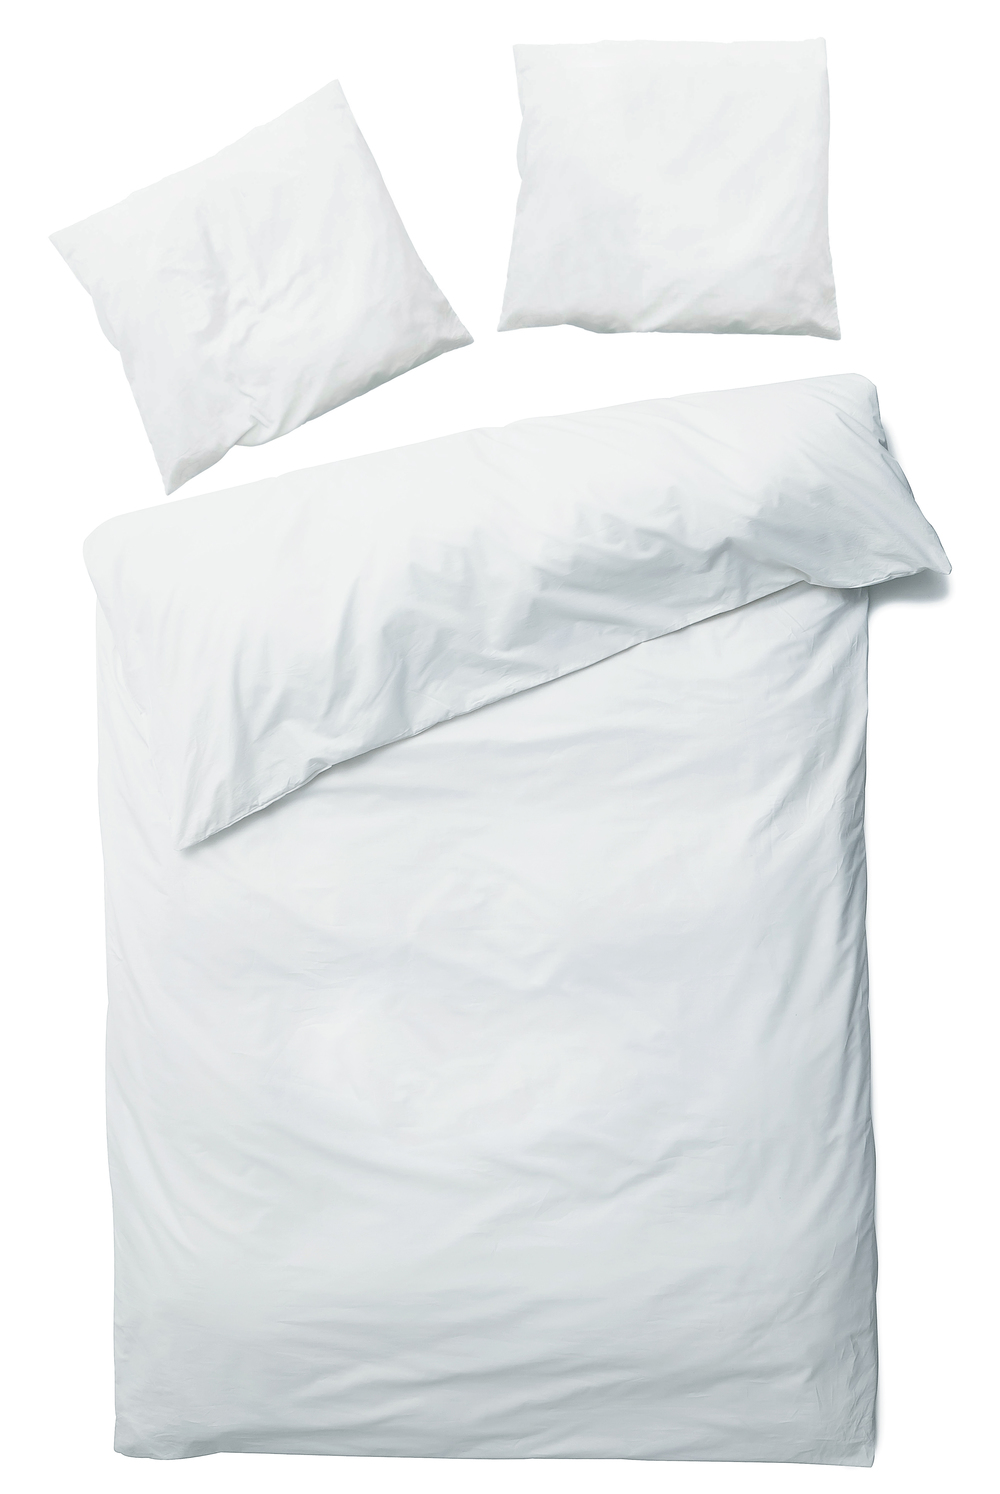 egyptian-cotton-duvet.jpg